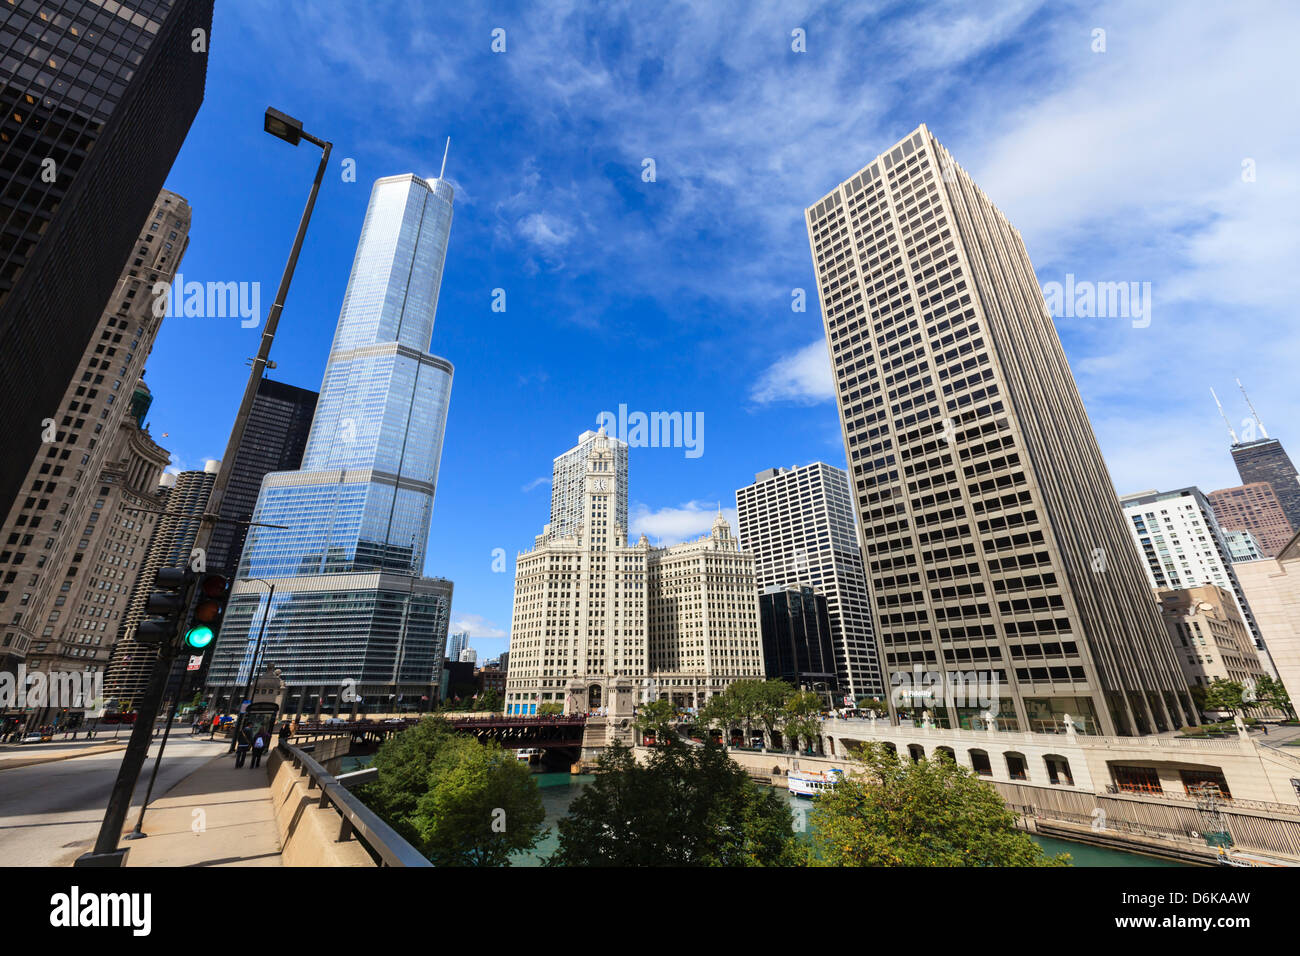 Chicago River looking towards Trump Tower and the Wrigley Building, Chicago, Illinois, United States of America, - Stock Image